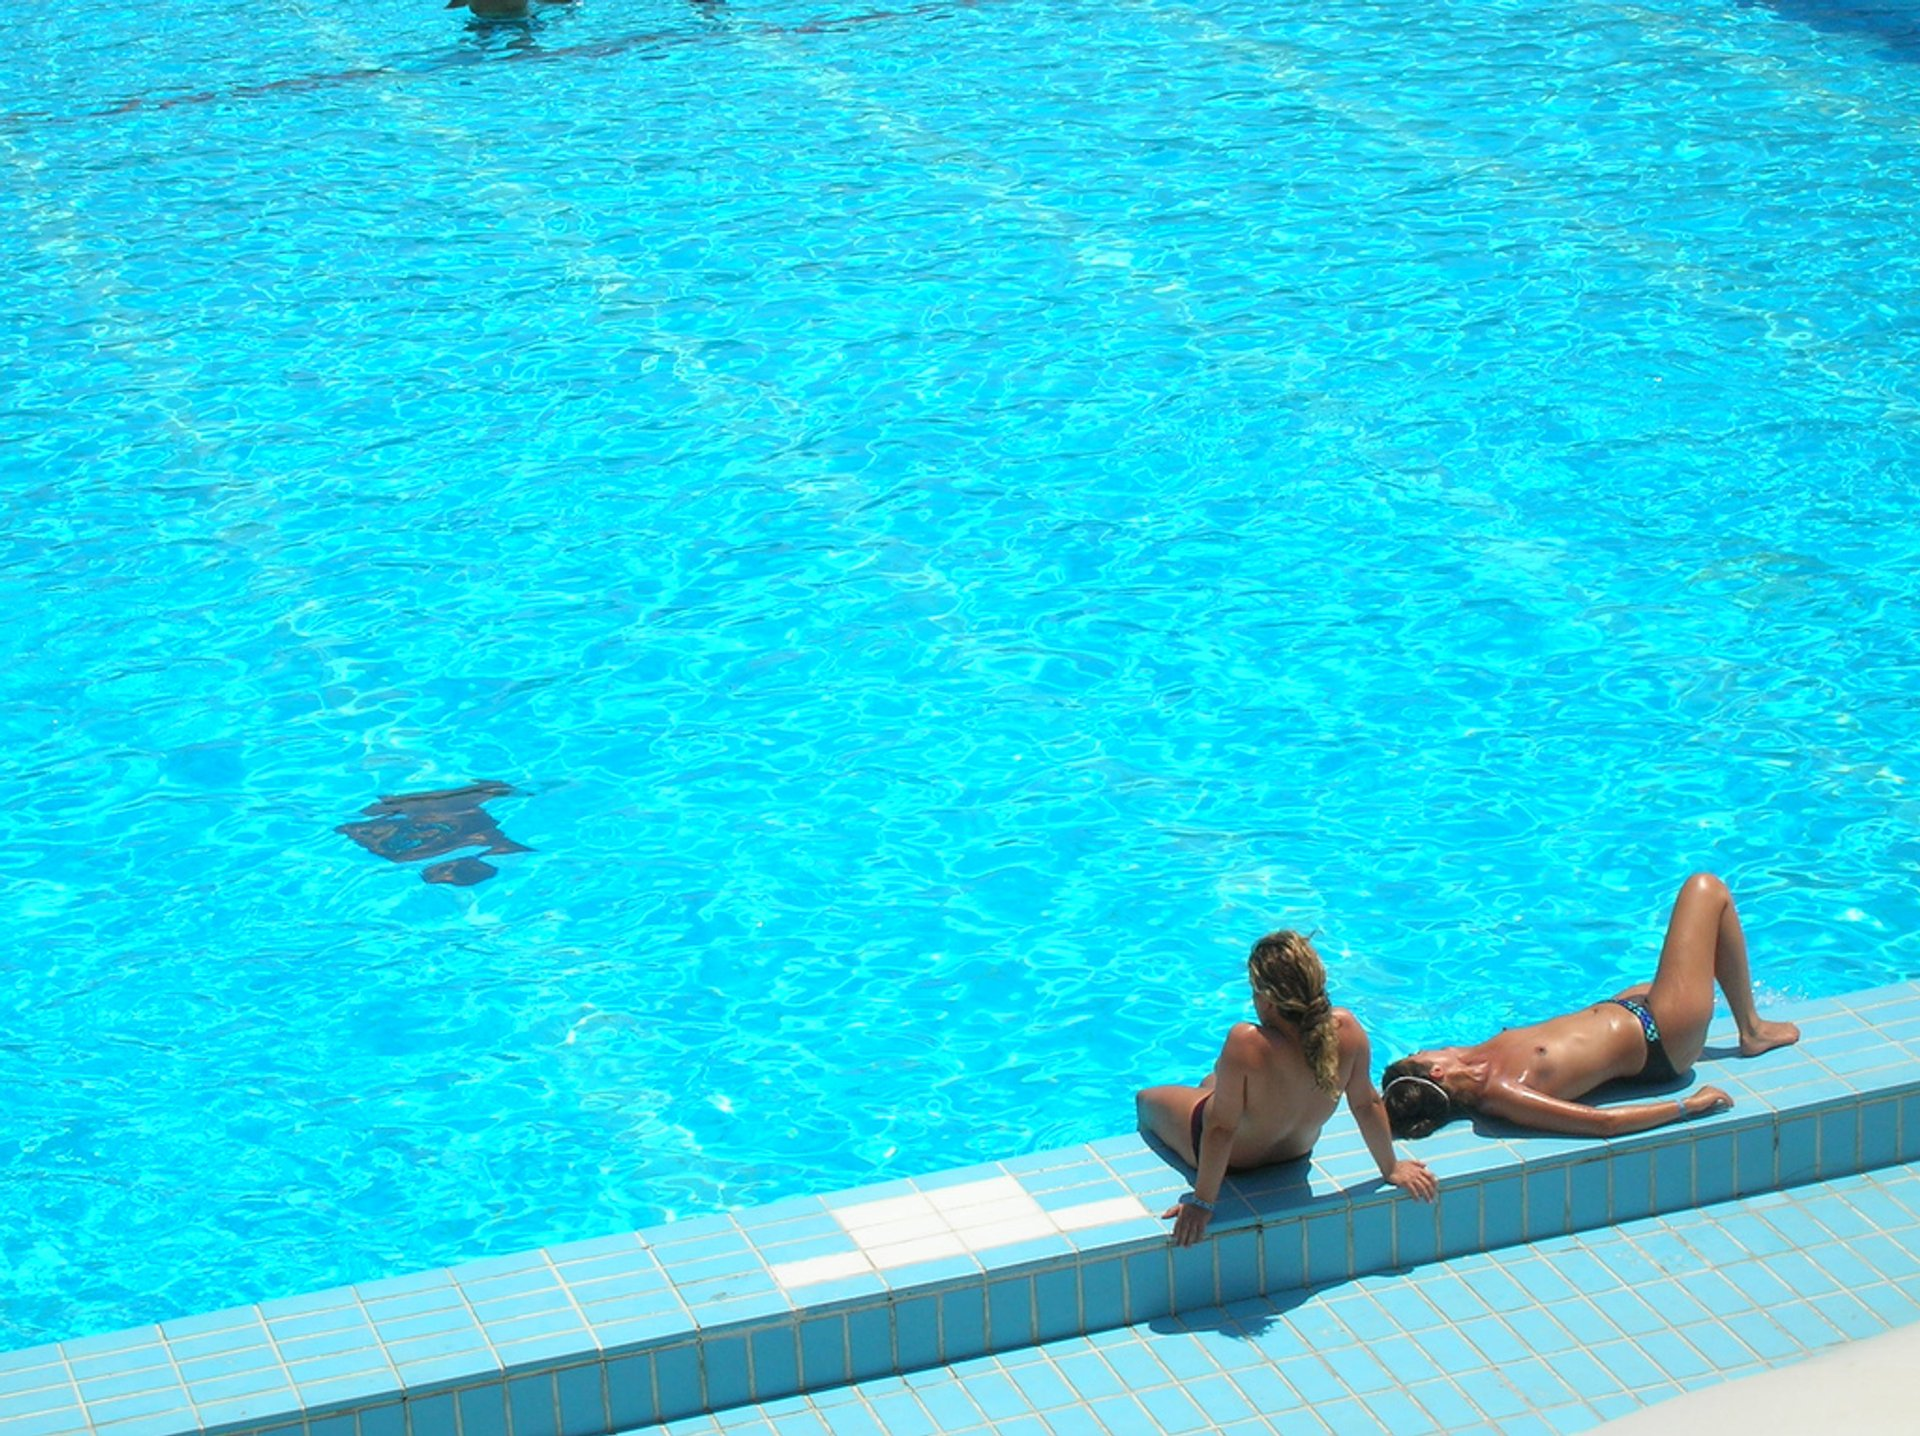 Public Swimming Pools in Madrid 2020 - Best Time